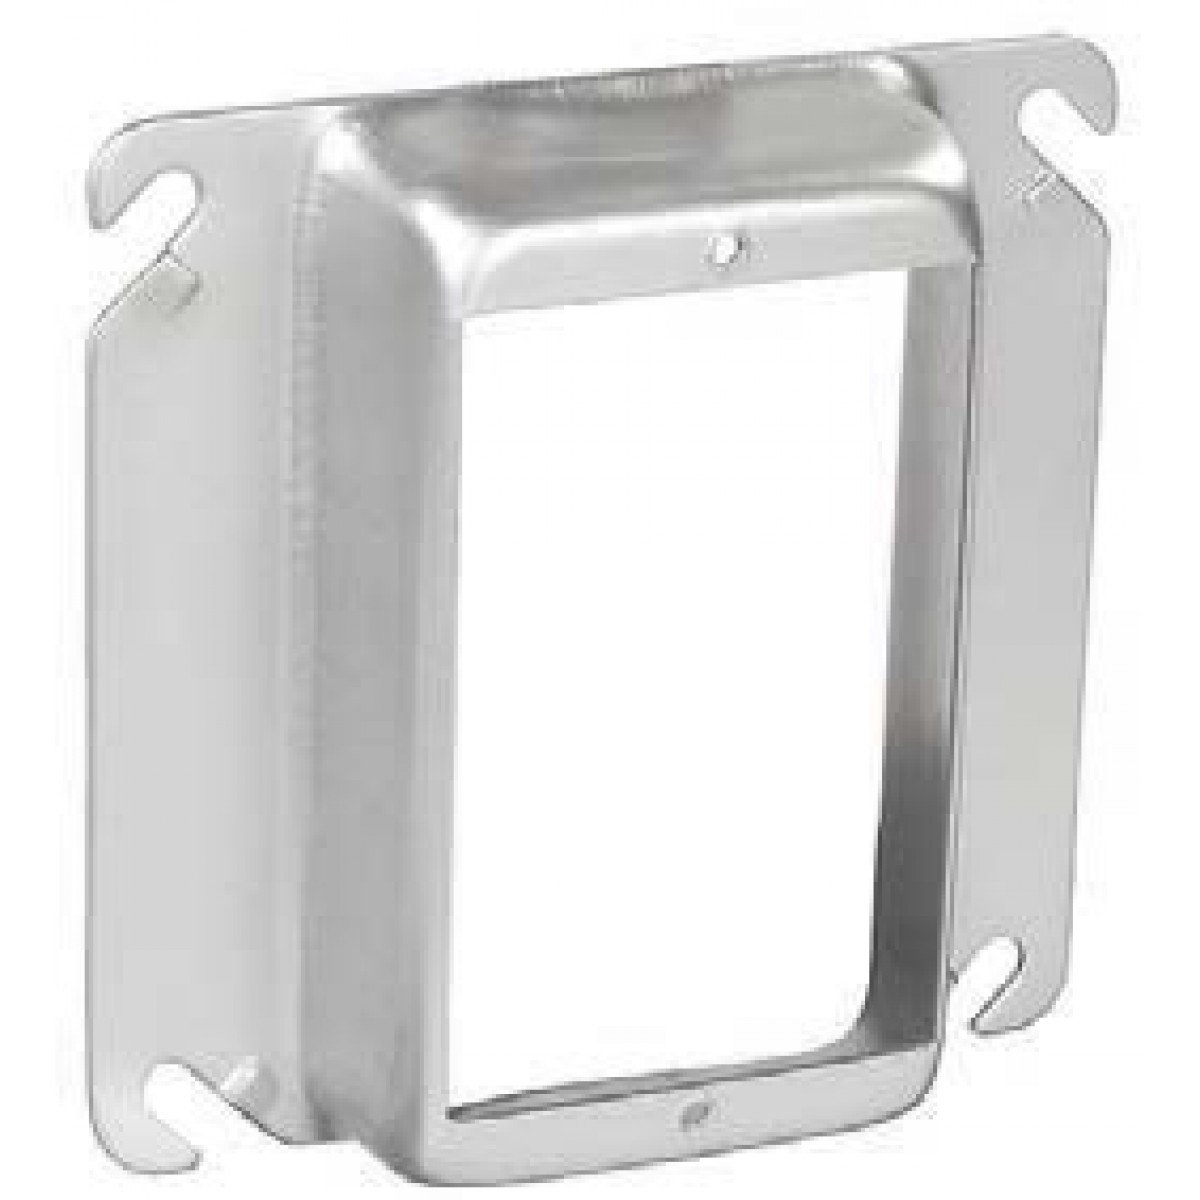 2 Pcs, Stainless Steel 4 Square One Gang Device Ring, 1/4 In. Raised Used In Damp, Wet, Or Highly Corrosive Environments Electrical Or Low Voltage Switch, Device Or Outlet Add to 4In Square Box